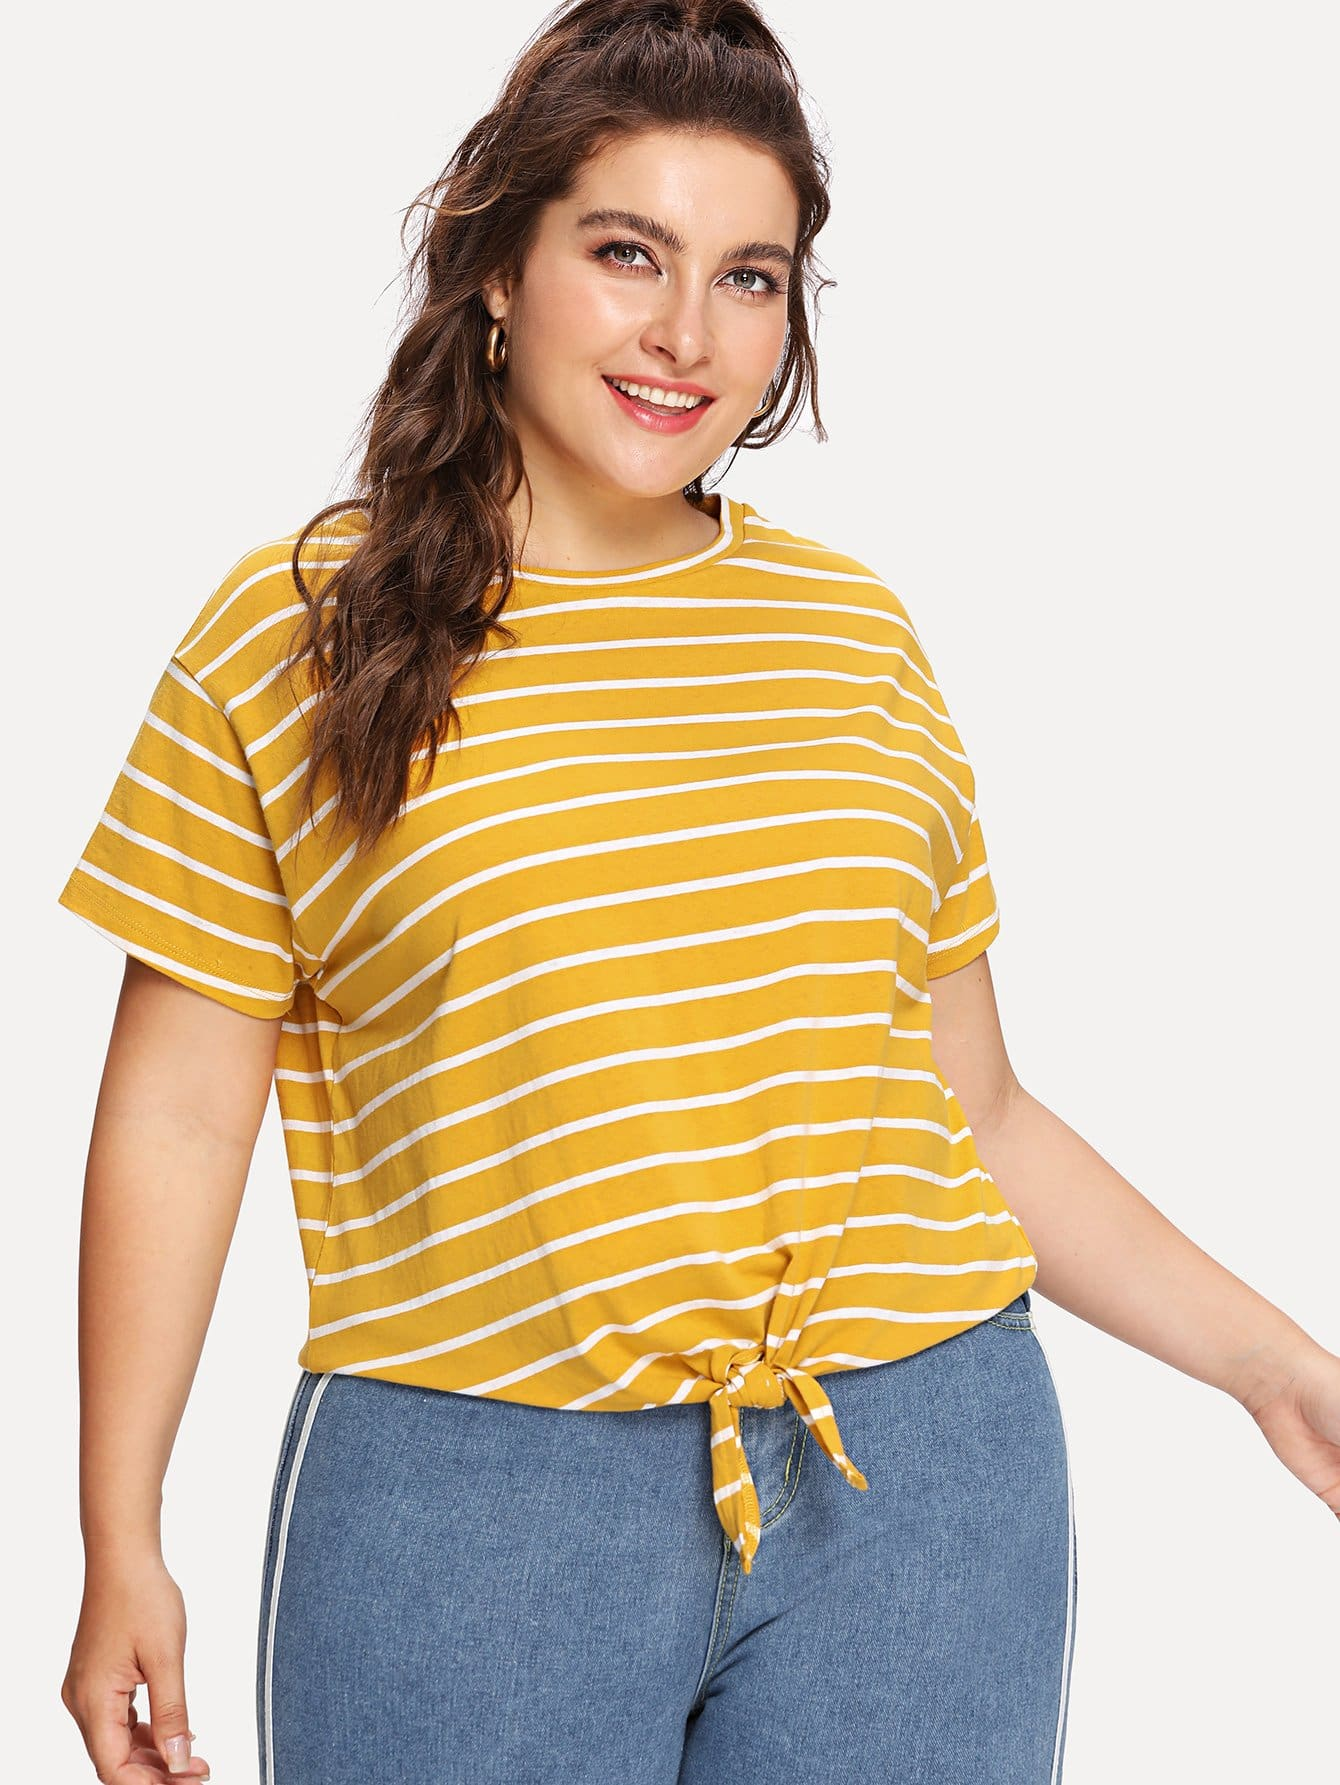 Knot Front Striped Tee hollow lace shoulder knot front tee